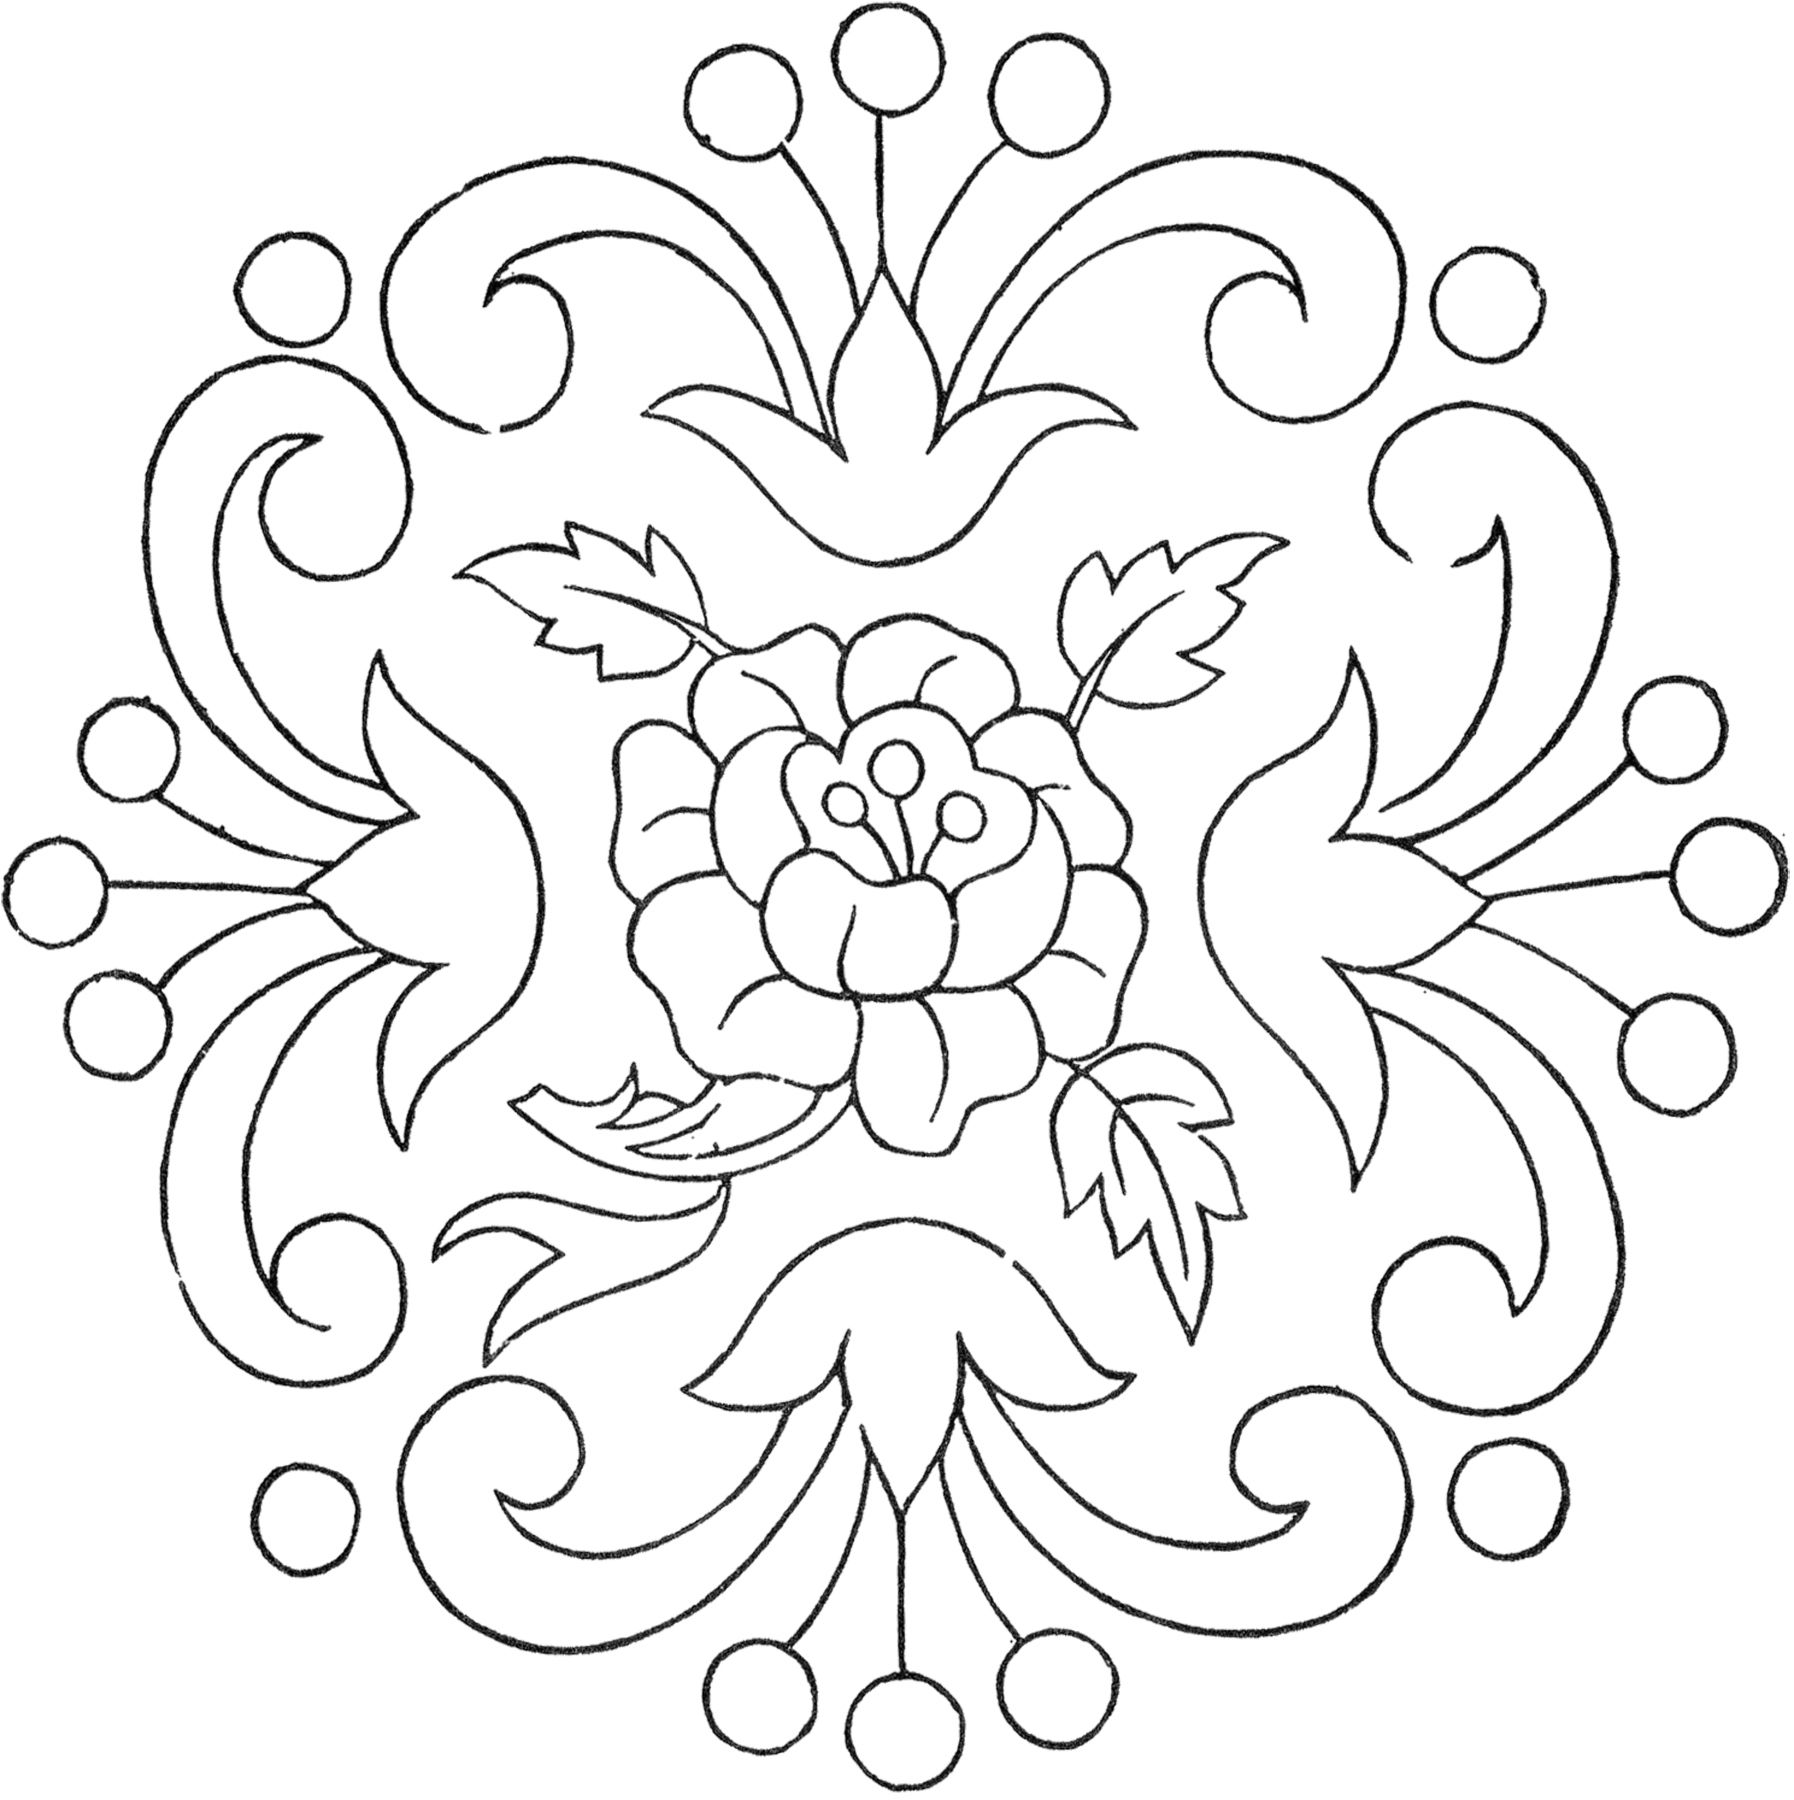 Flower Embroidery Patterns Amazing Ideas